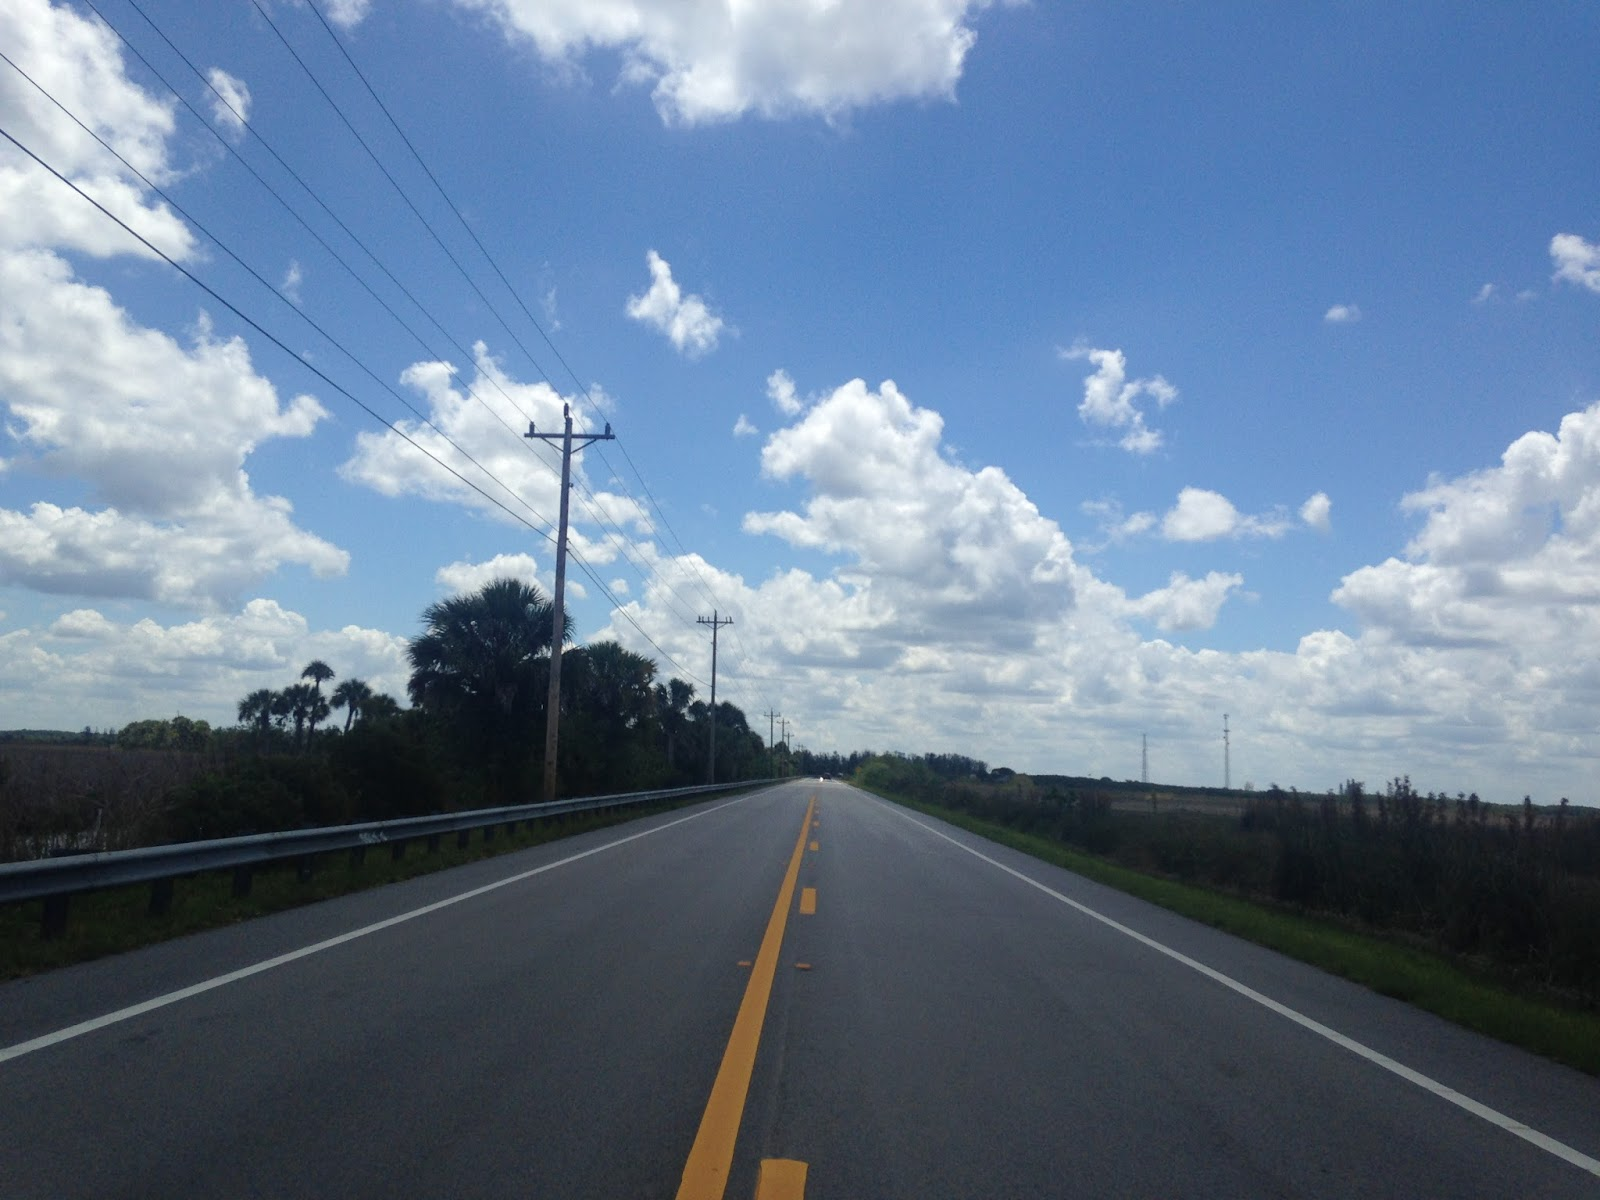 much of the tamiami trail east to miami was dredged out of the ground next to the highway which led to the drainage issues in the everglades